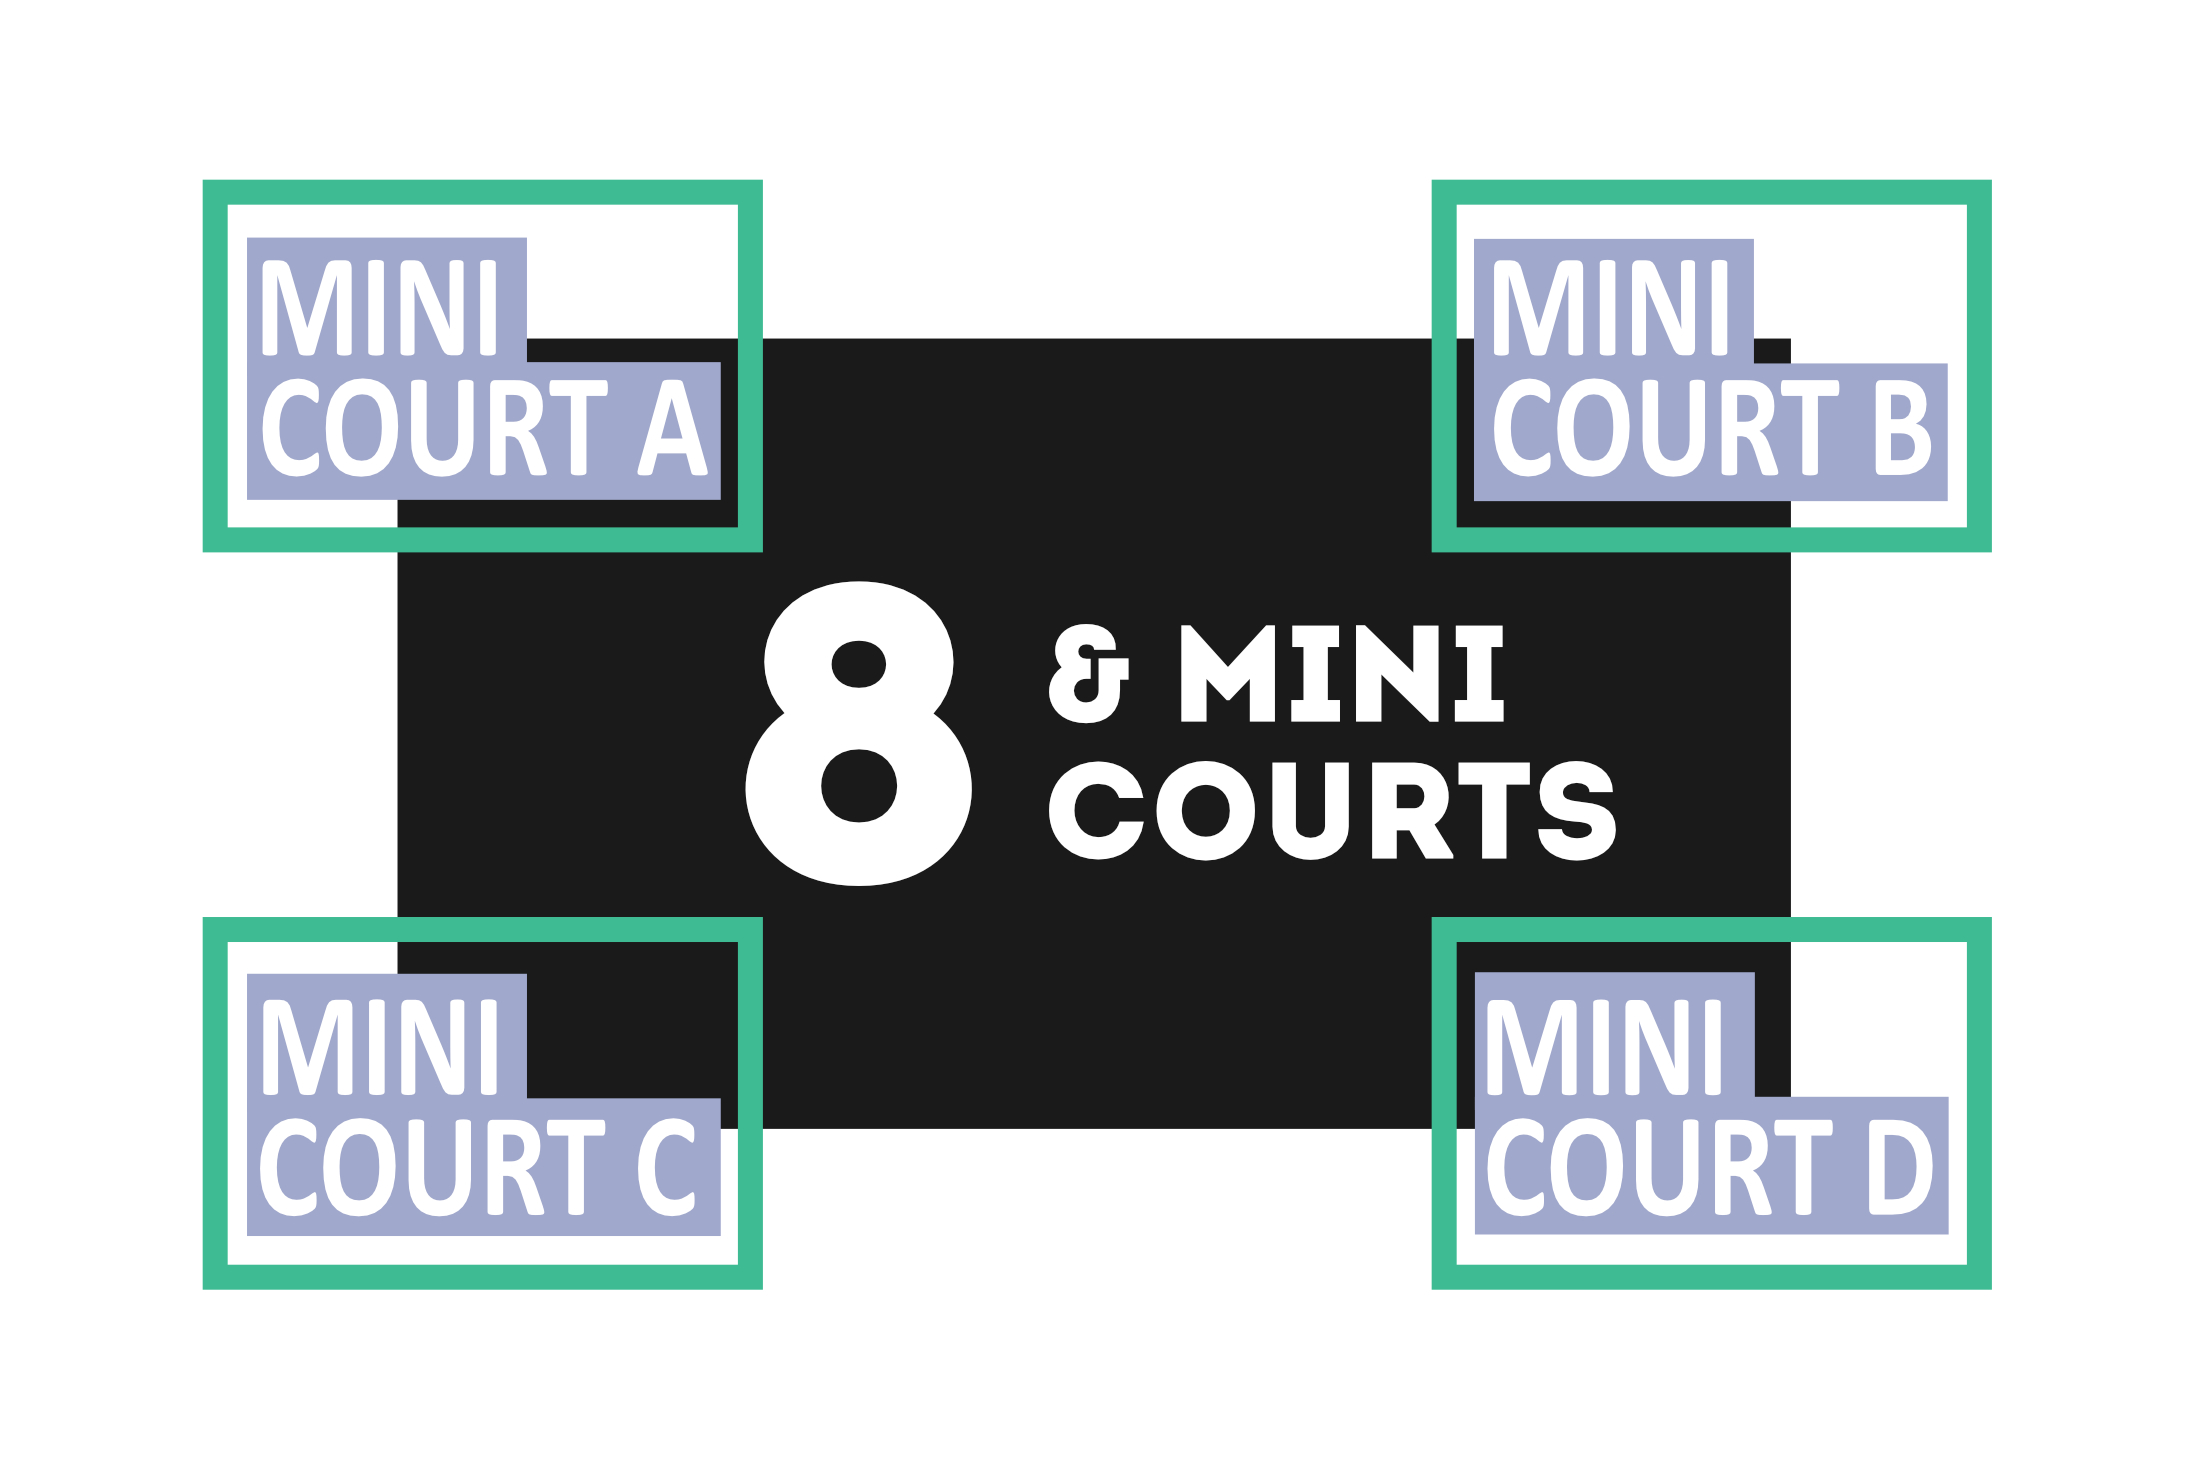 court 8 plus mini courts diagram